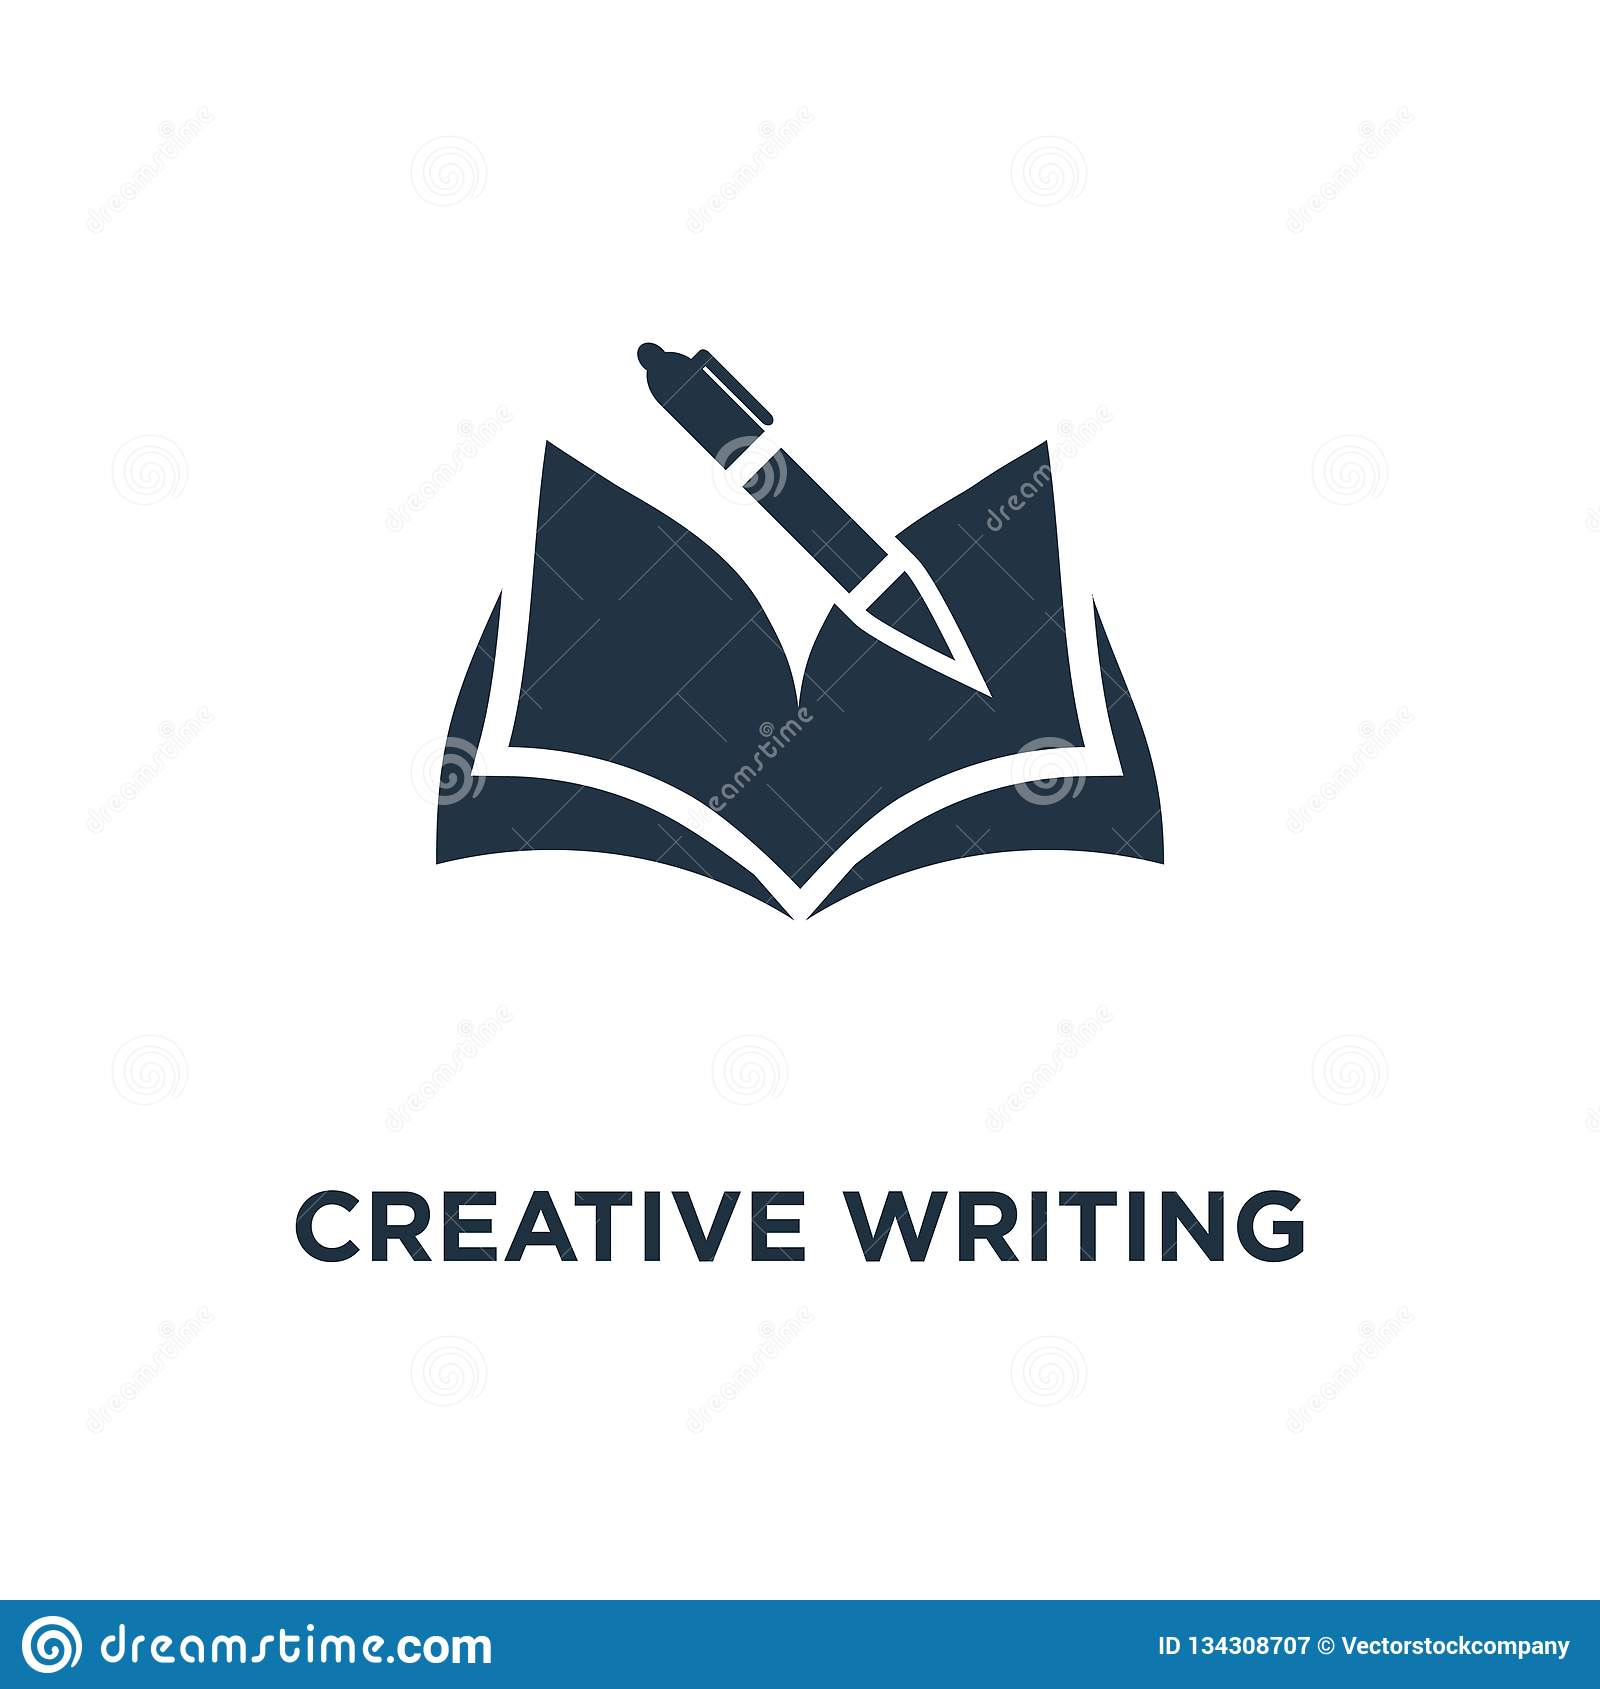 creative writing and storytelling icon. education concept symbol design, opened book, school study, learning subject, book review